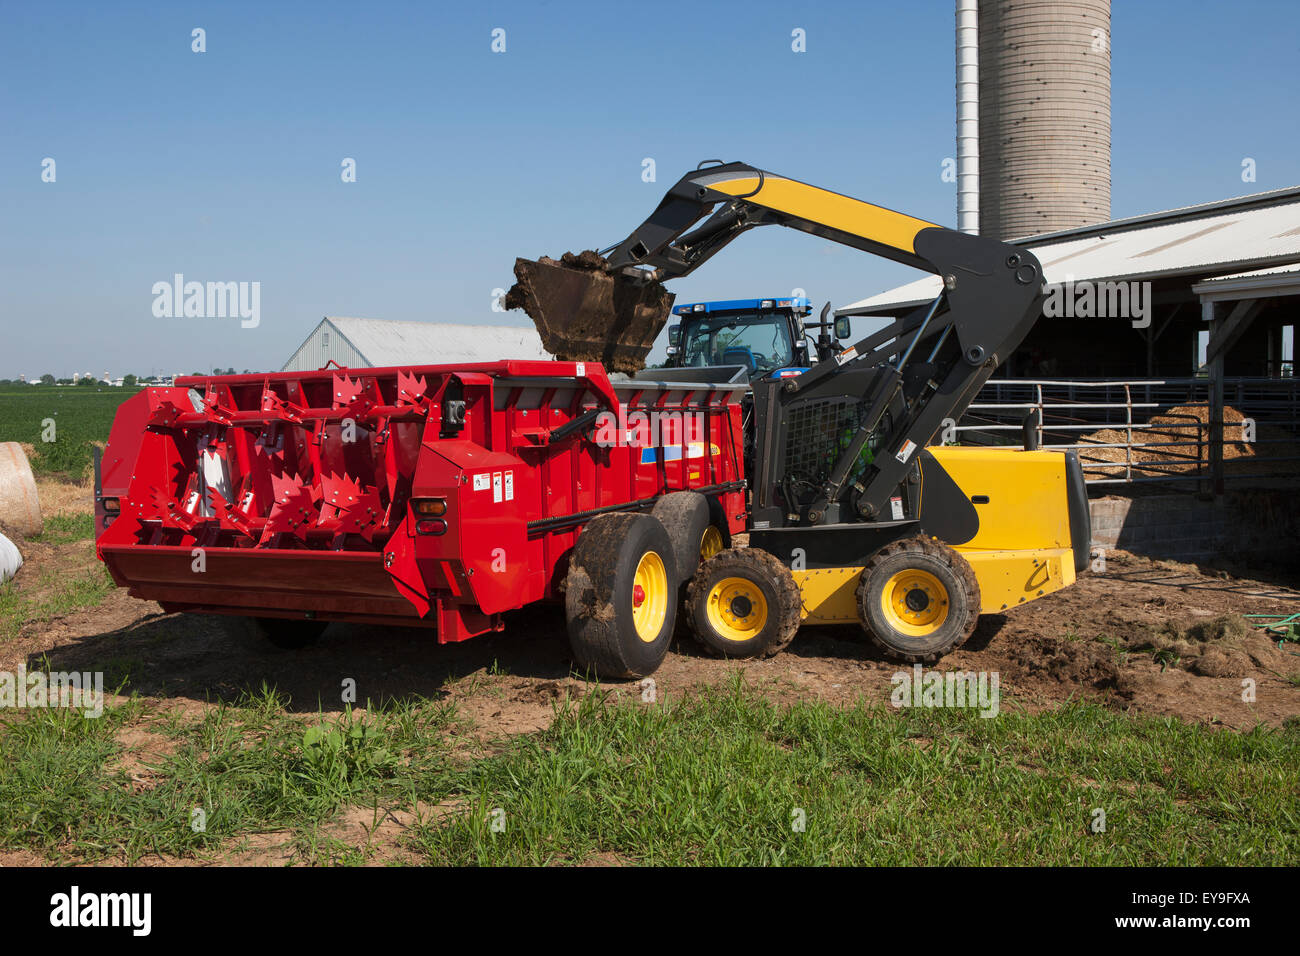 New Holland L180 Skid Steer Loader Stock Photos New Holland L180